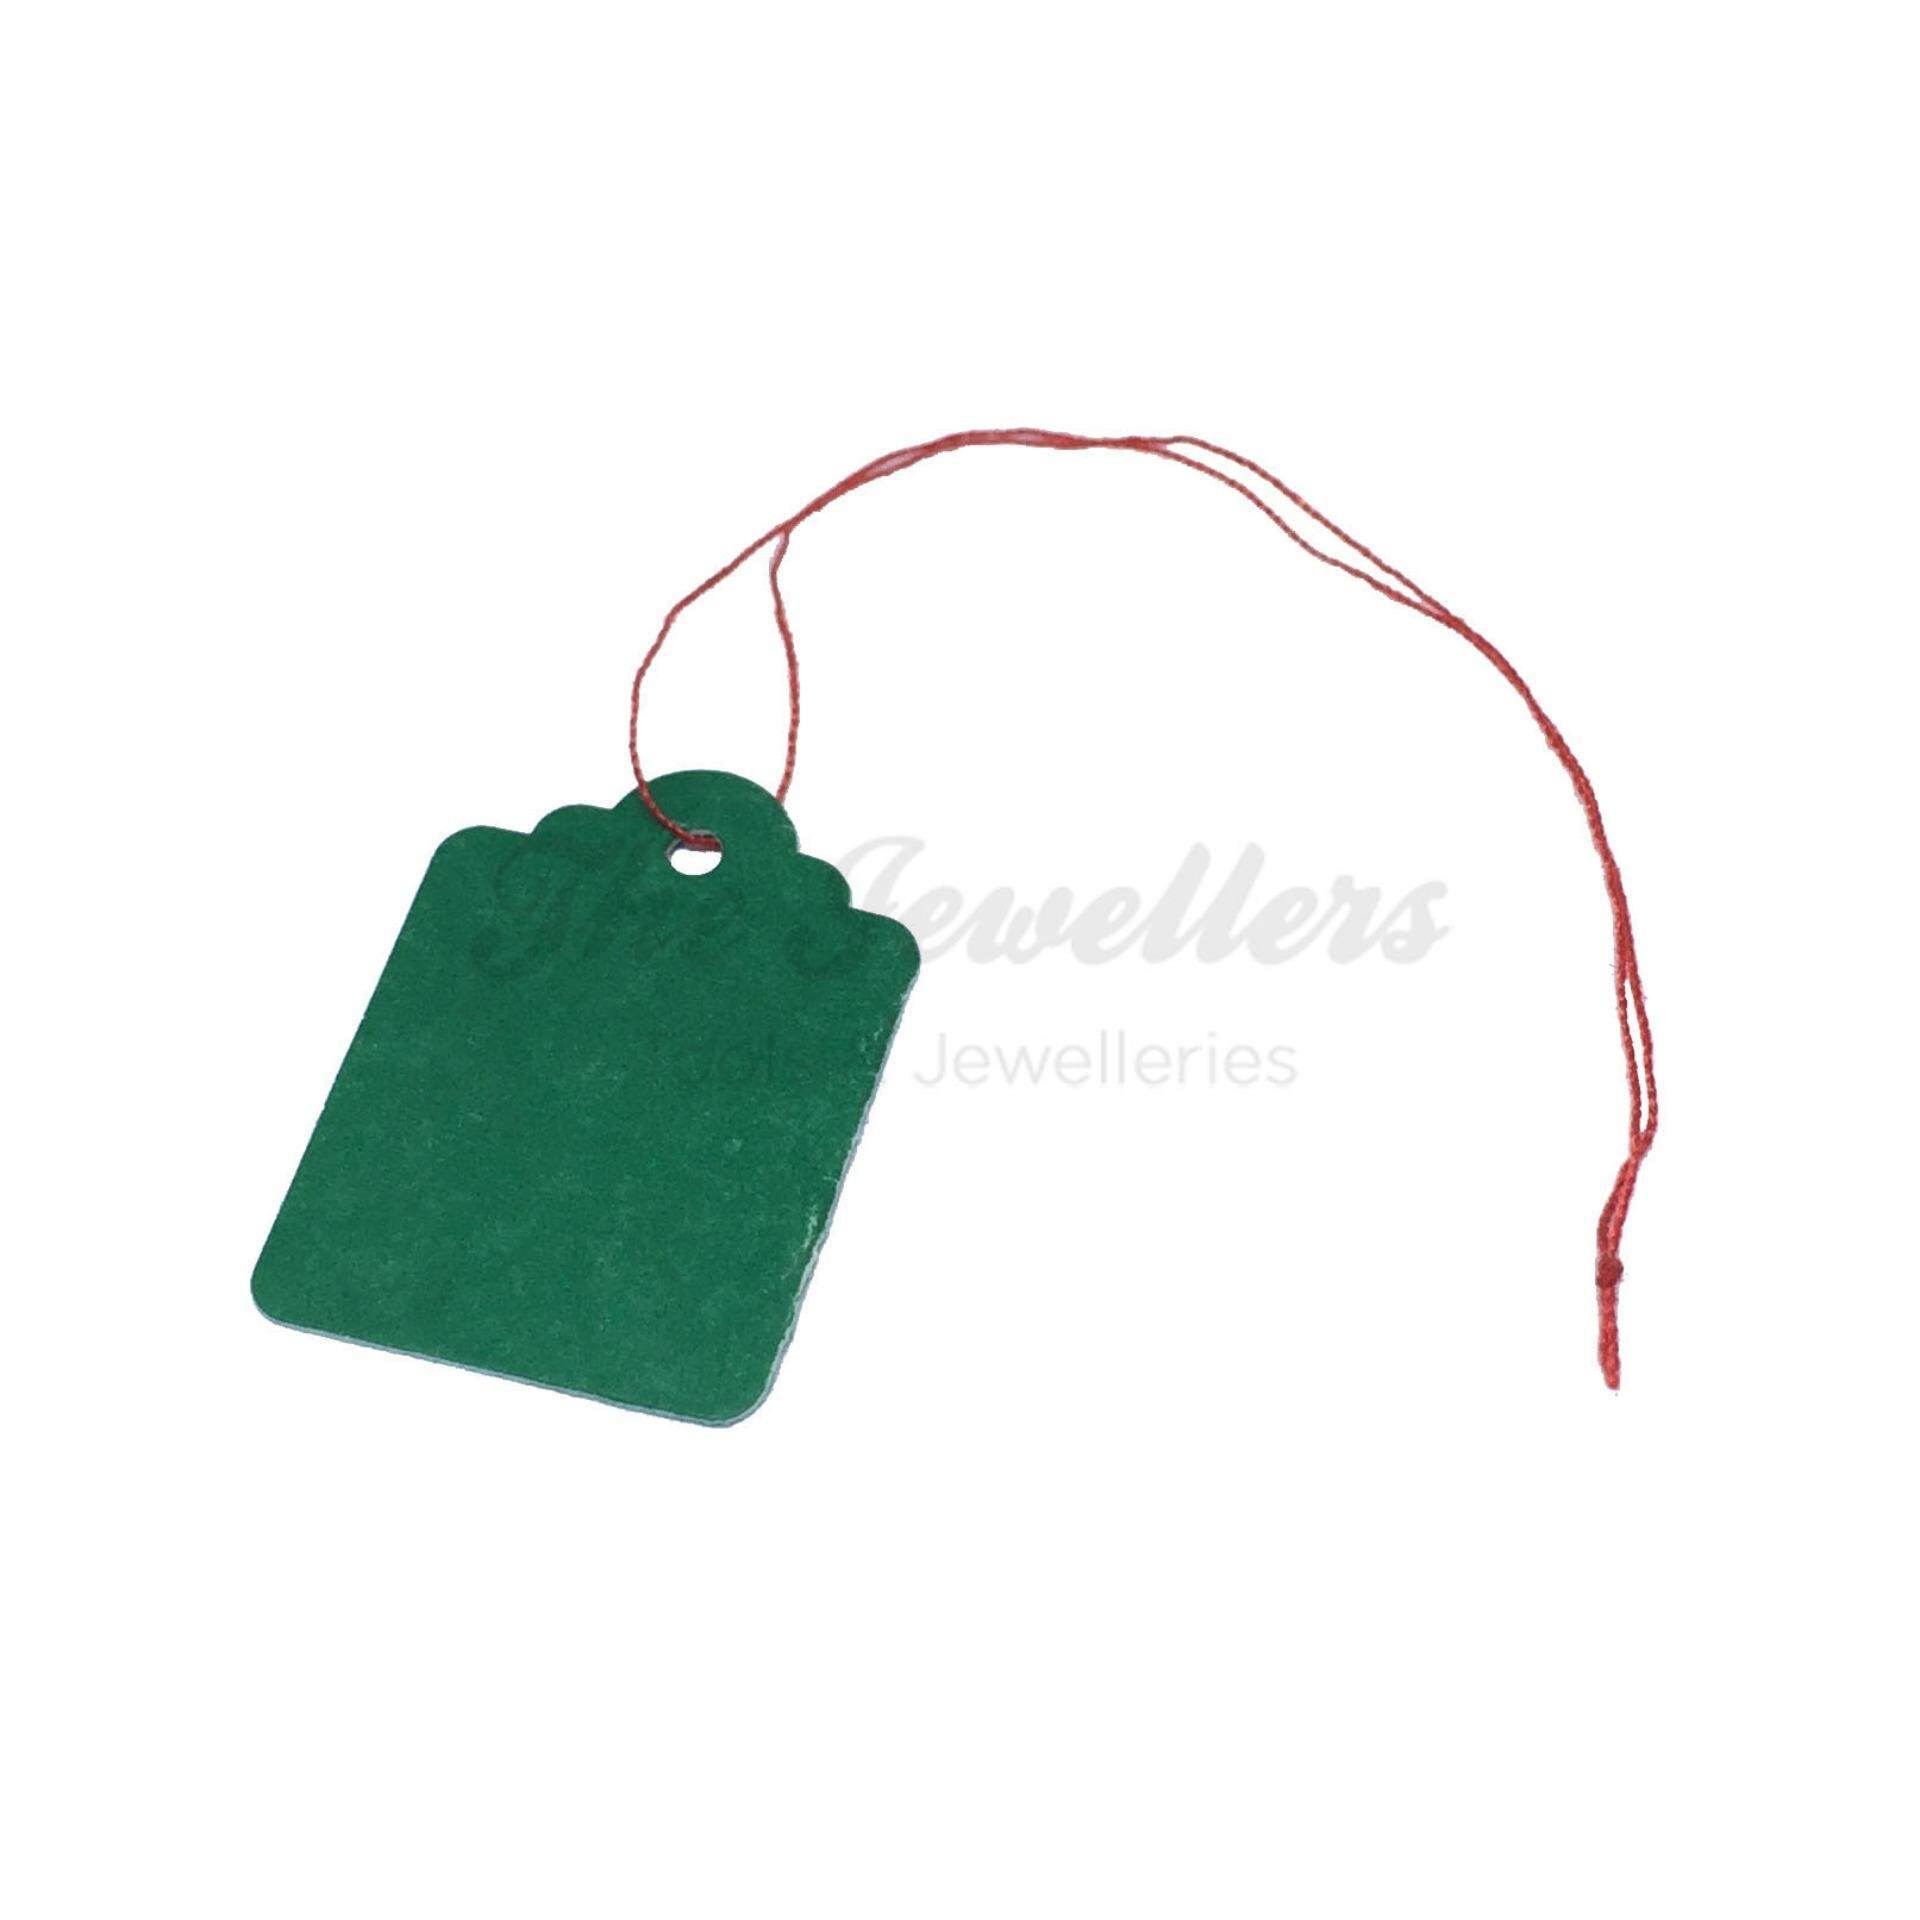 450+-pcs Rectangular Shape Green Colour Jewellery Price Tag with Thin Red Thread